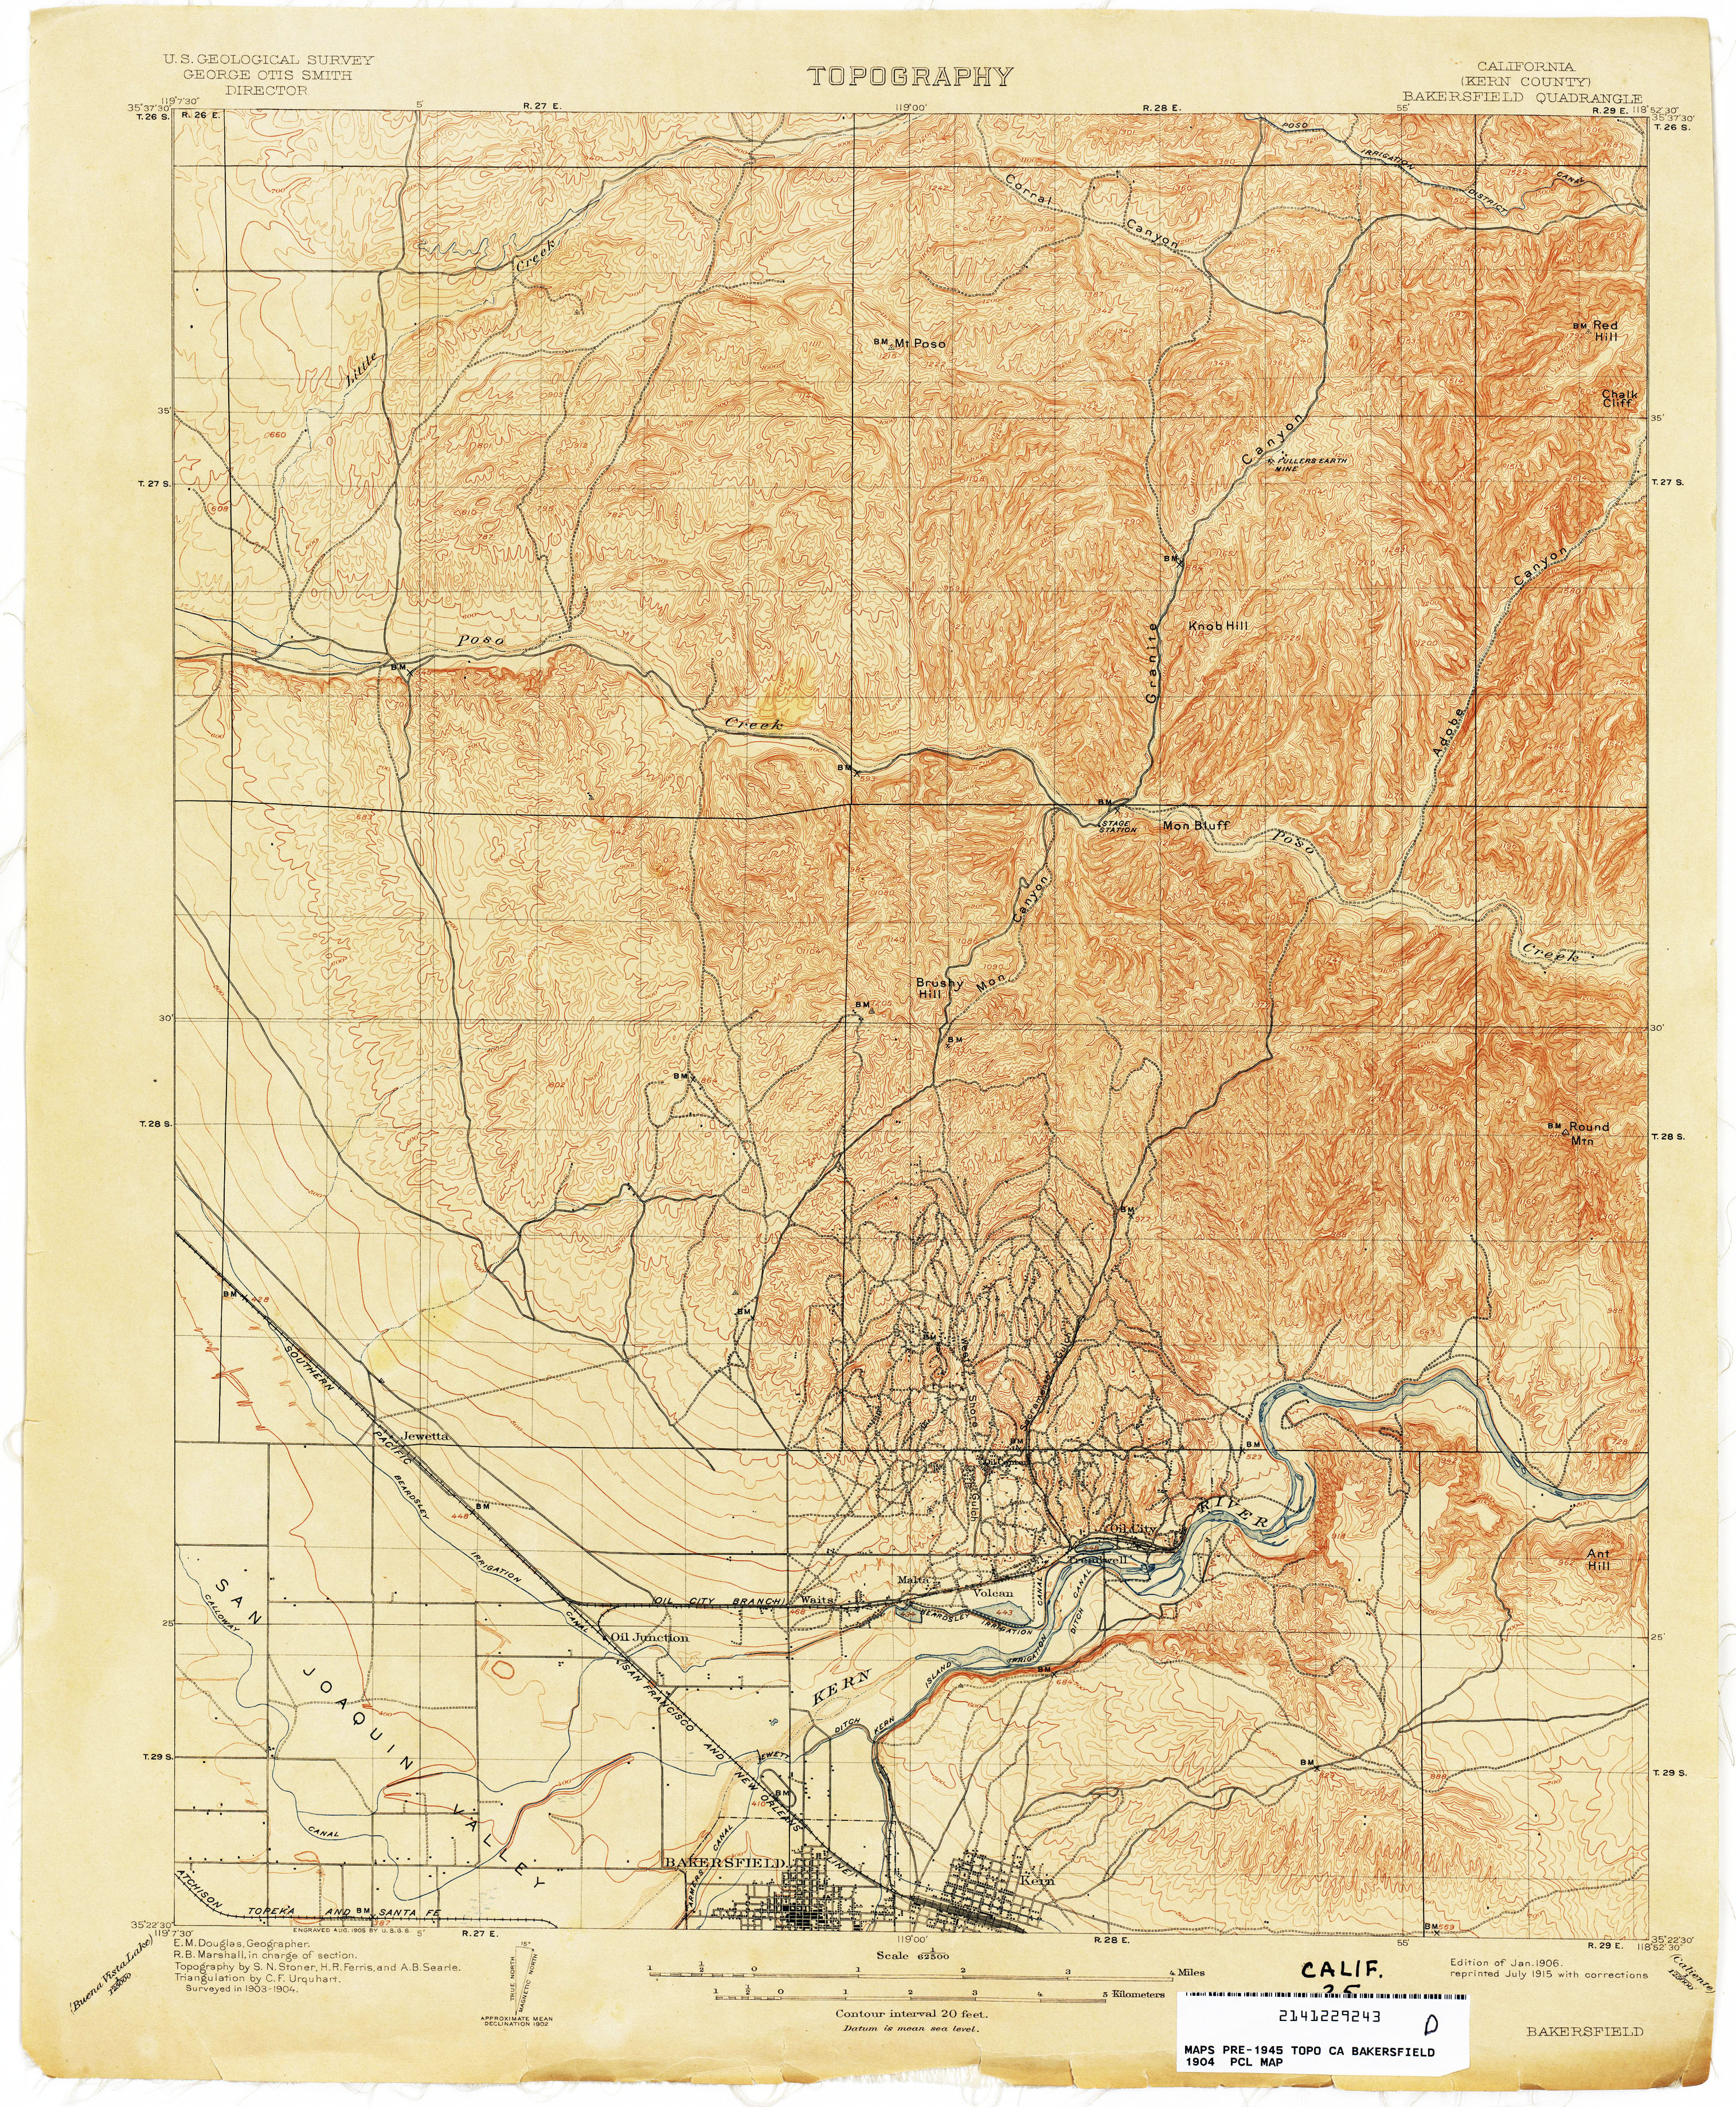 California Topographic Maps - Perry-Castañeda Map Collection - UT on city of ridgecrest california map, kern valley road map, kern medical center map, vallejo street map, south west bakersfield ca street map, malibu street map, national city street map, kern river gas map, south dakota street map, kern national wildlife refuge, palmdale street map, san francisco bay street map, will and dupage county map, san gabriel valley street map, inland empire street map, cerritos street map, thousand oaks street map, el monte street map, susanville street map, grapevine street map,